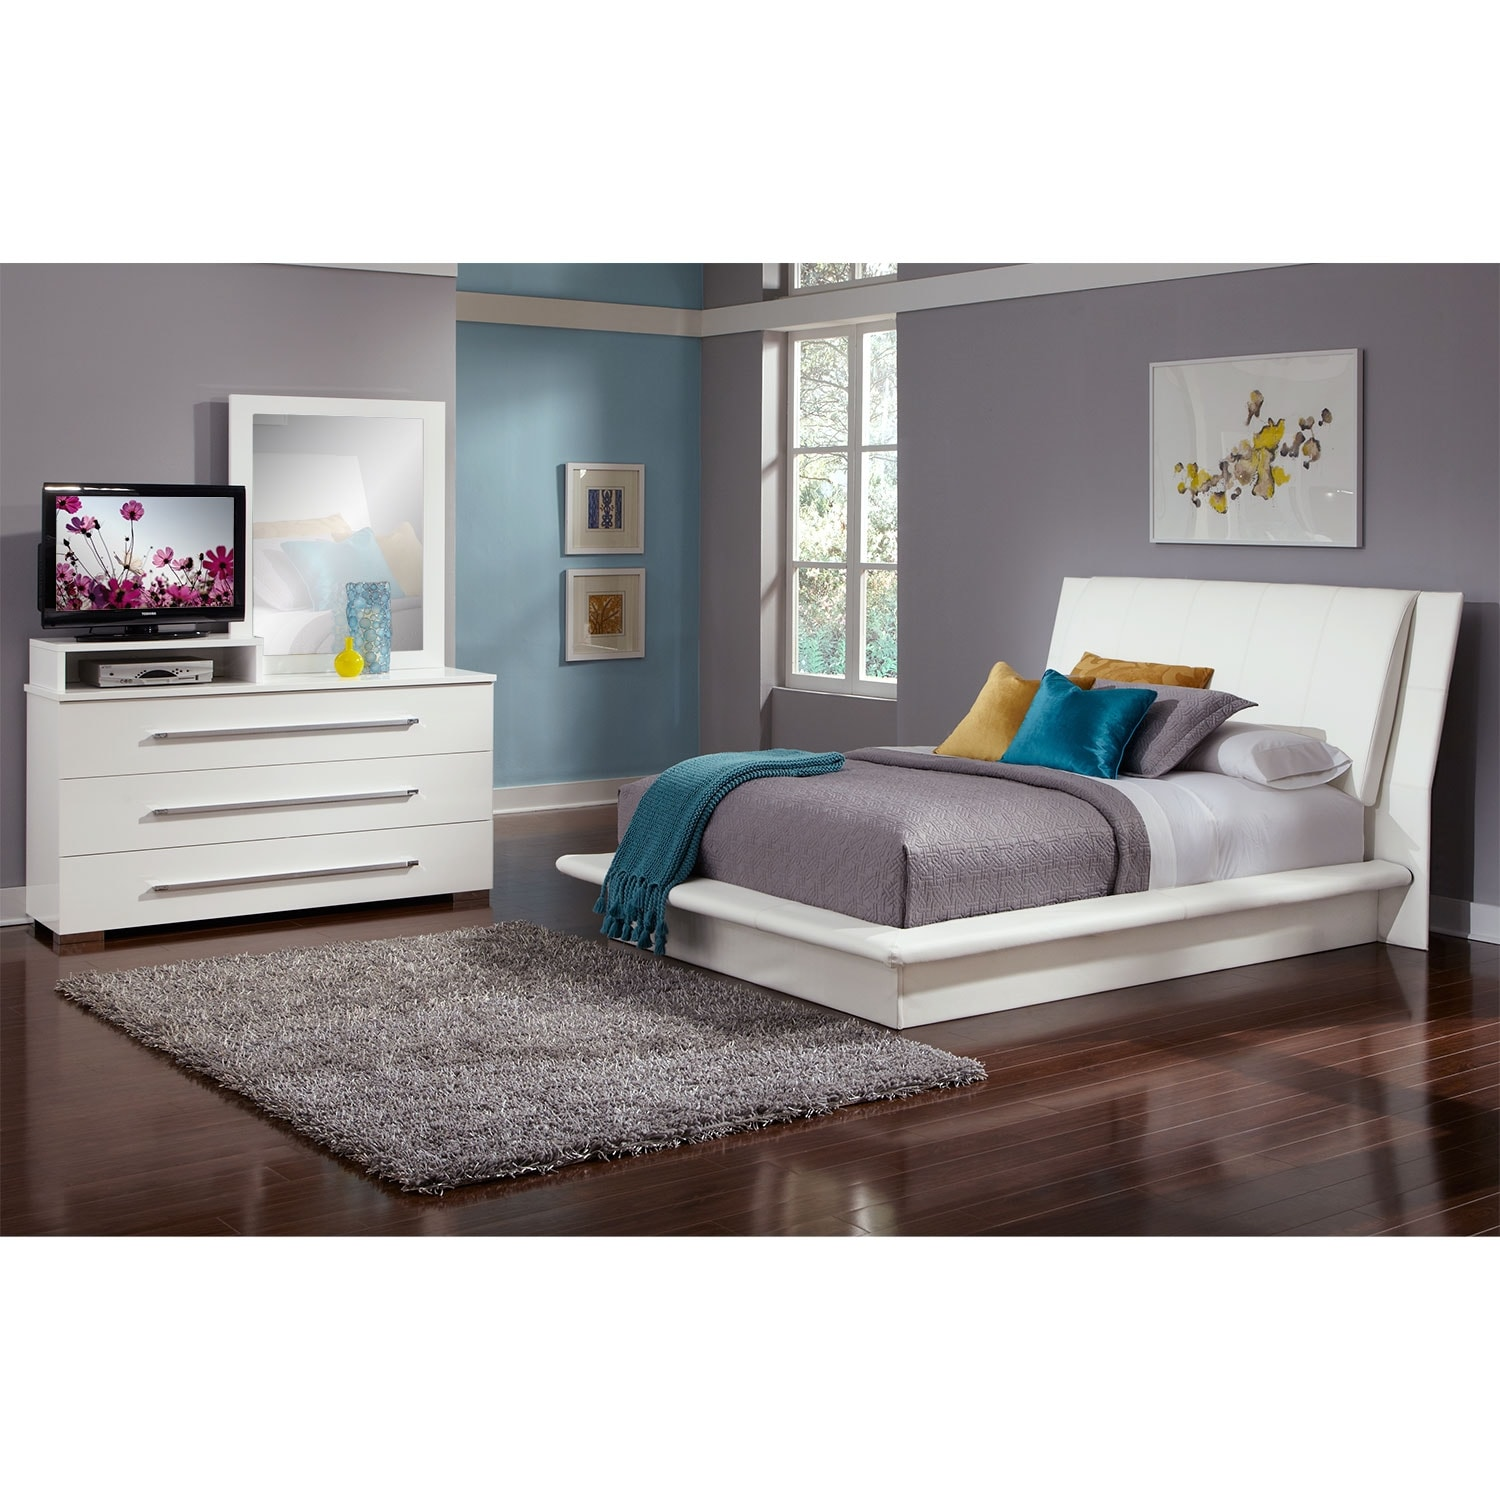 dimora bedroom set dimora 5 king upholstered bedroom set with media 11428